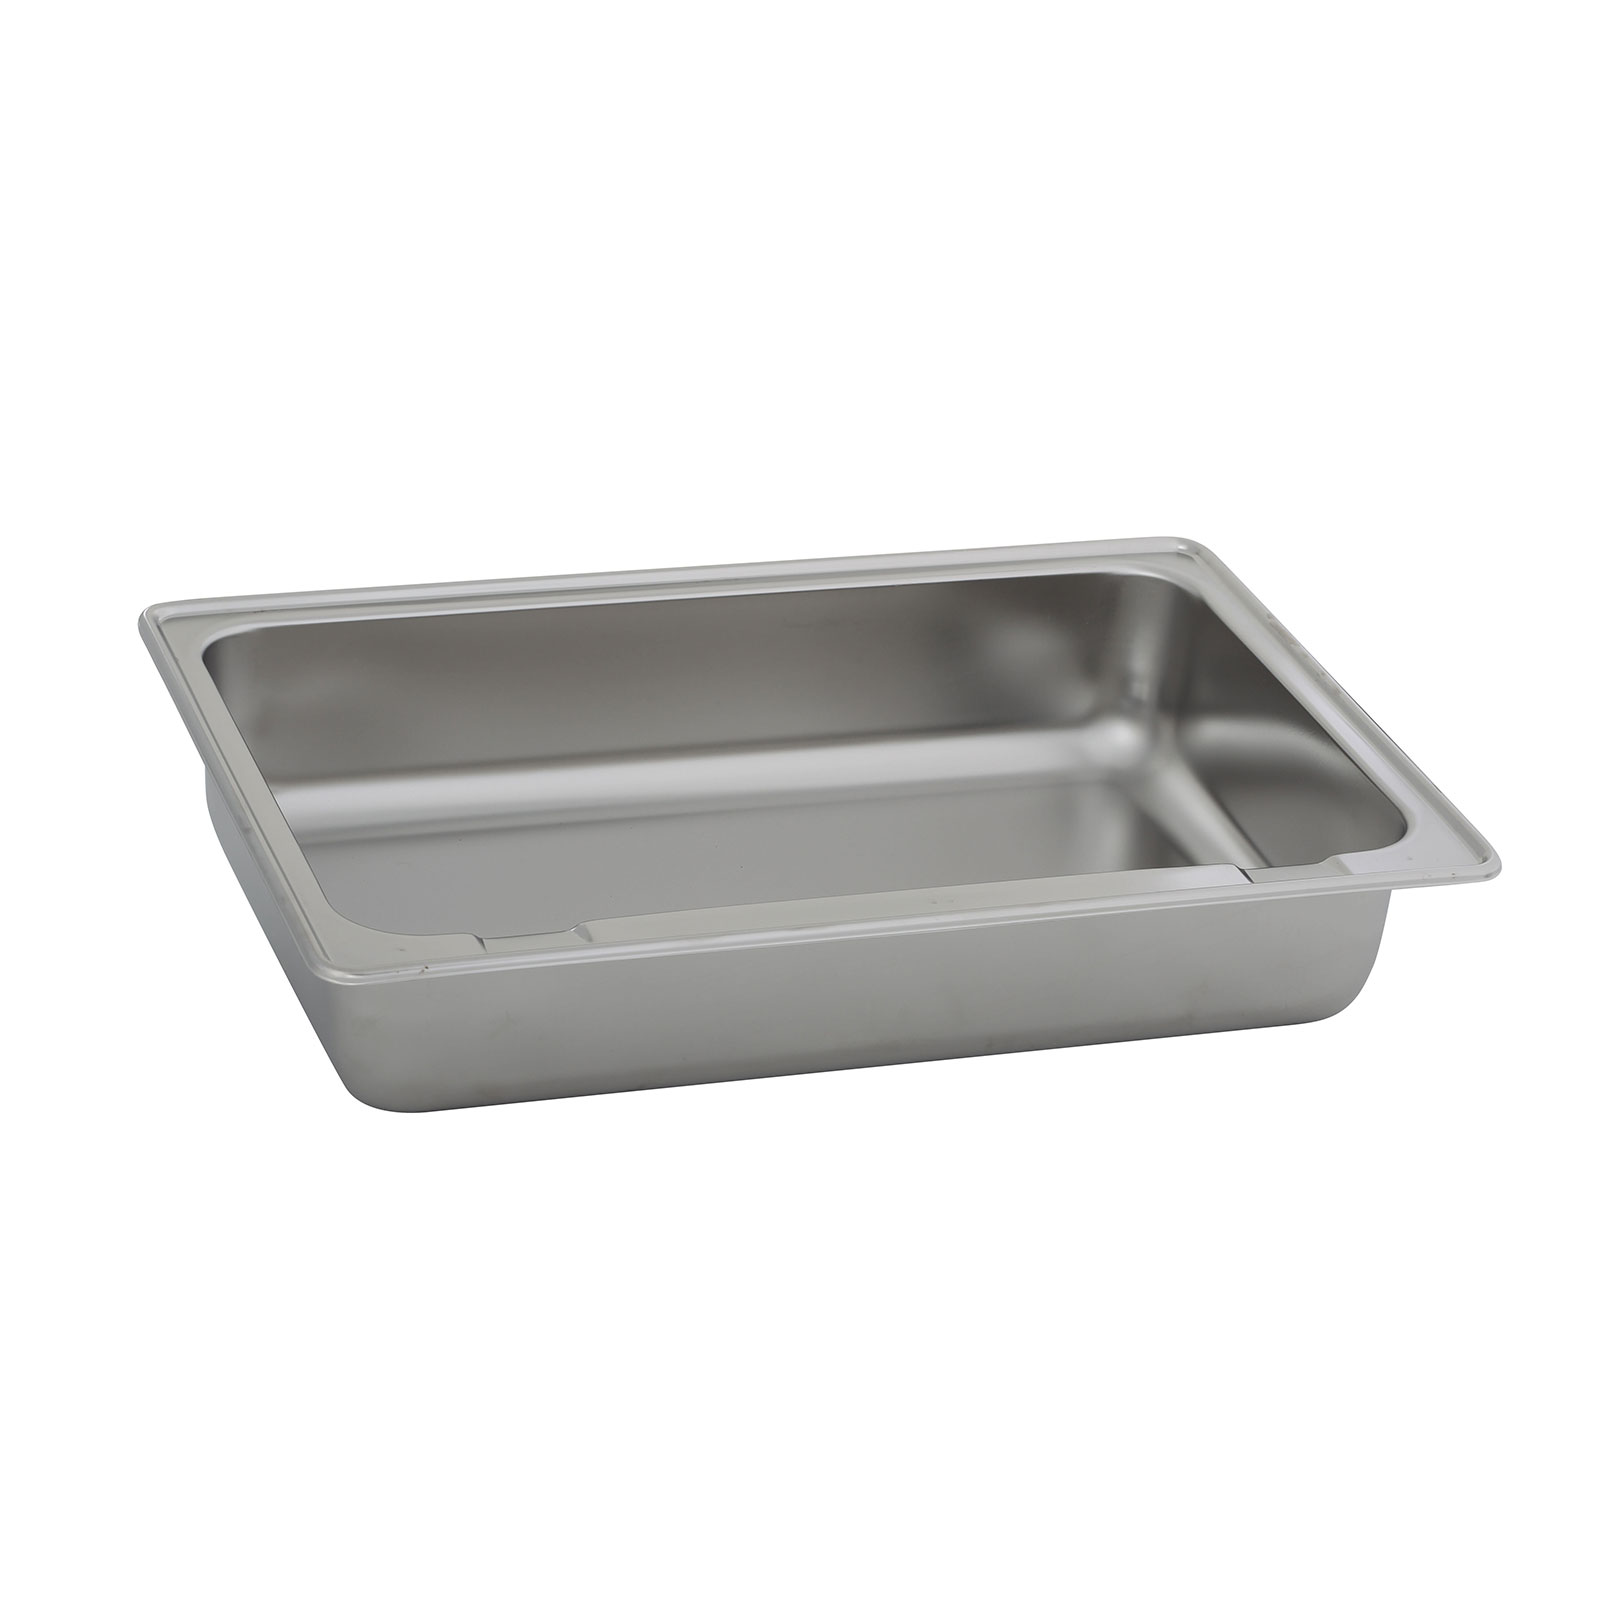 Winco 101-WP chafing dish pan